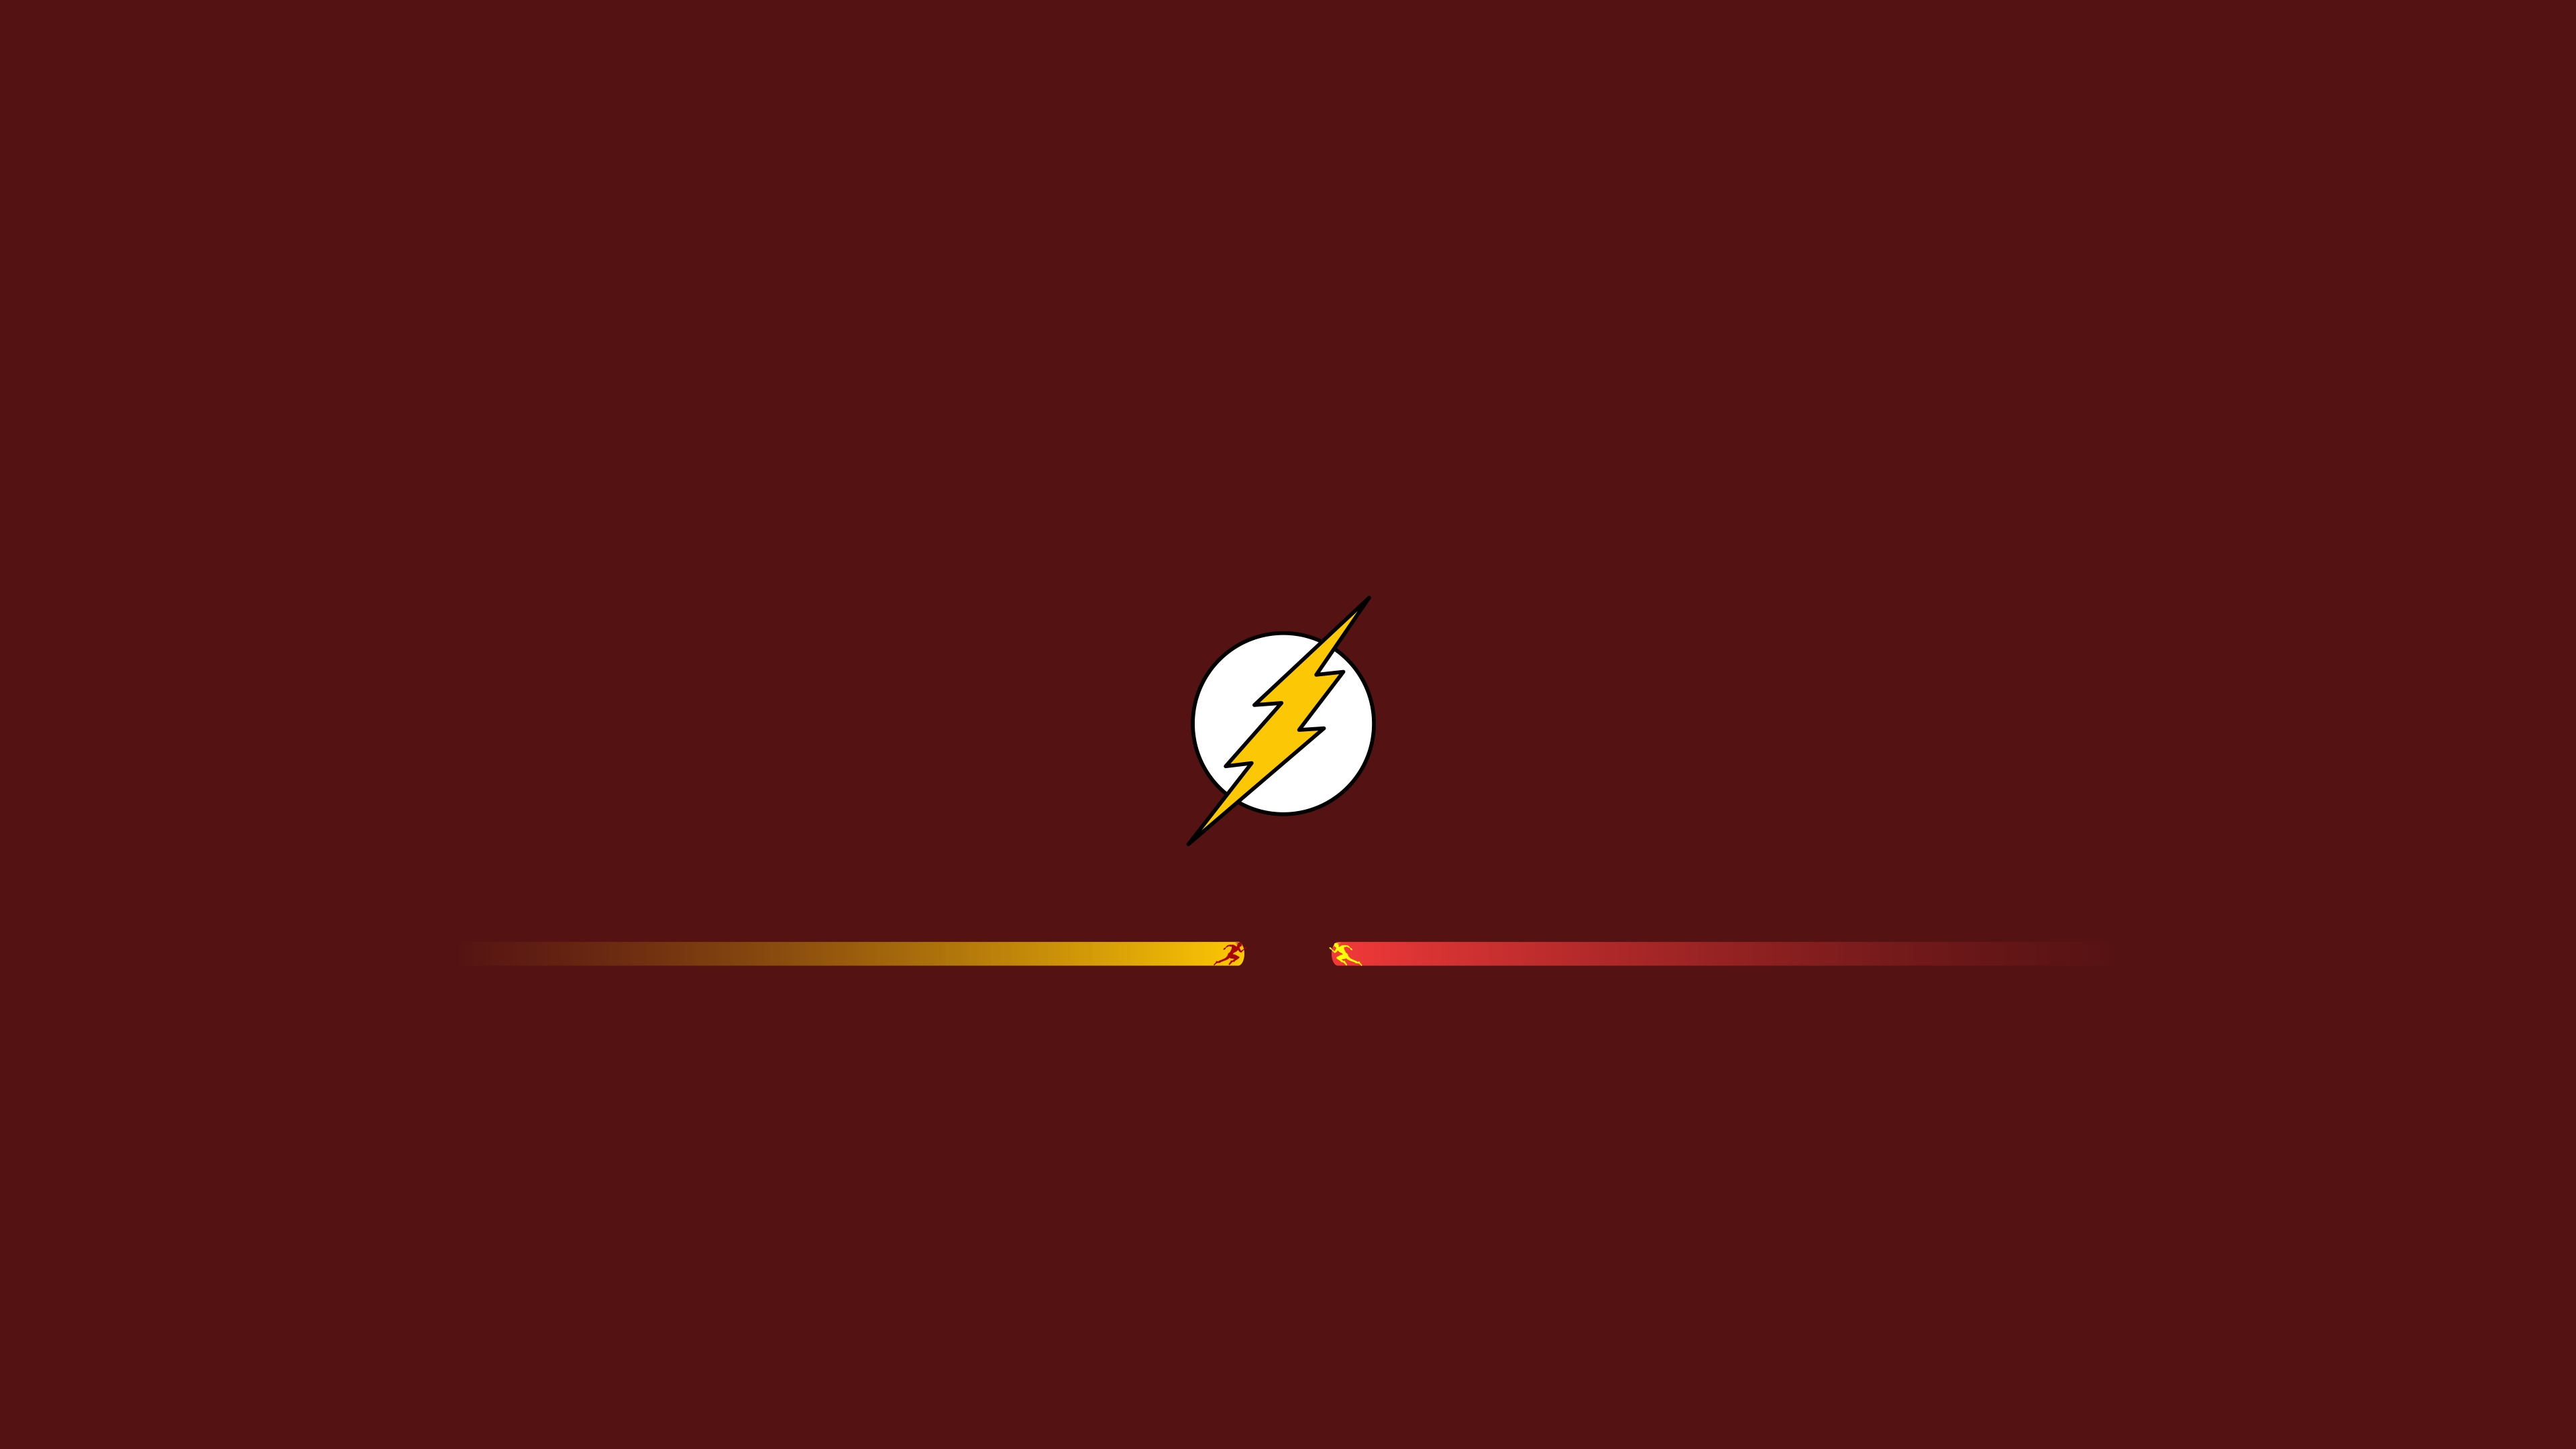 The Flash And Reverse Flash Minimalism Hd Superheroes 4k